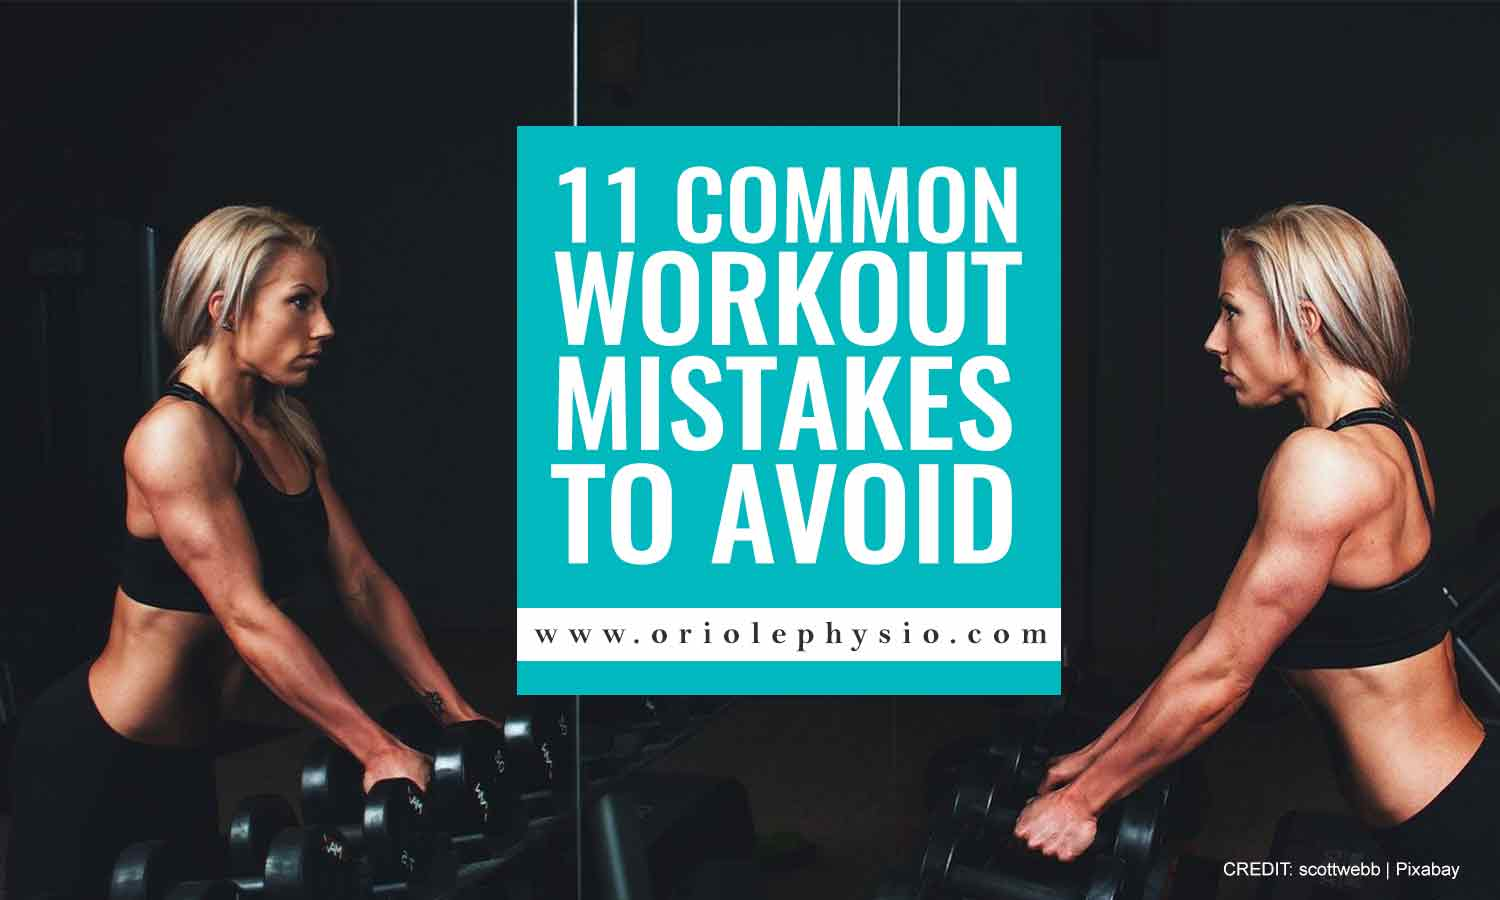 11 Common Workout Mistakes to Avoid